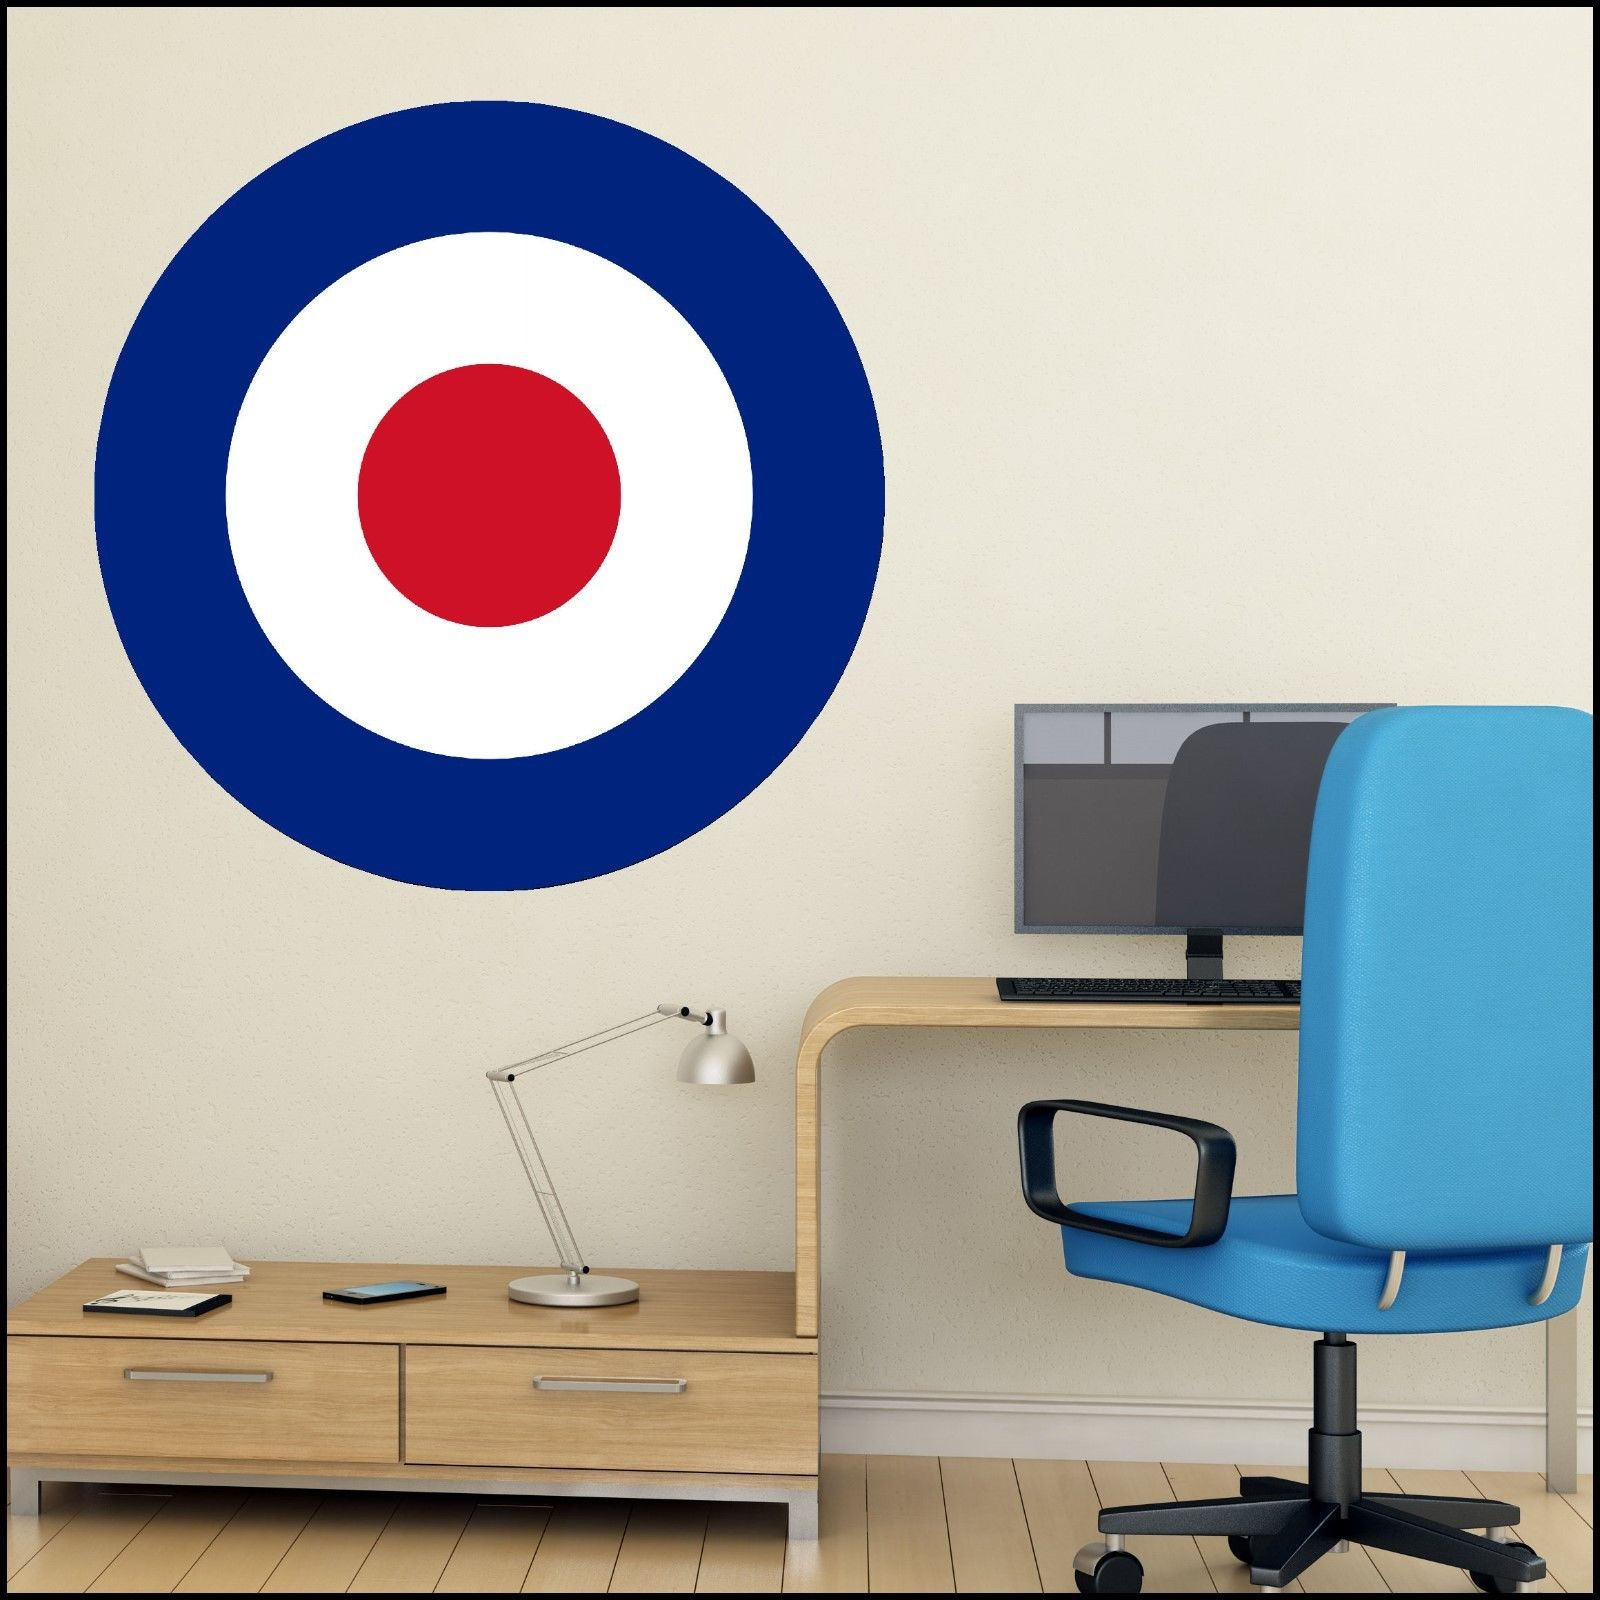 Large mod mods scooter red white blue target wall art sticker 6 large mod mods scooter red white blue target wall art sticker 6 size xl 12m 232427677040 2 amipublicfo Gallery